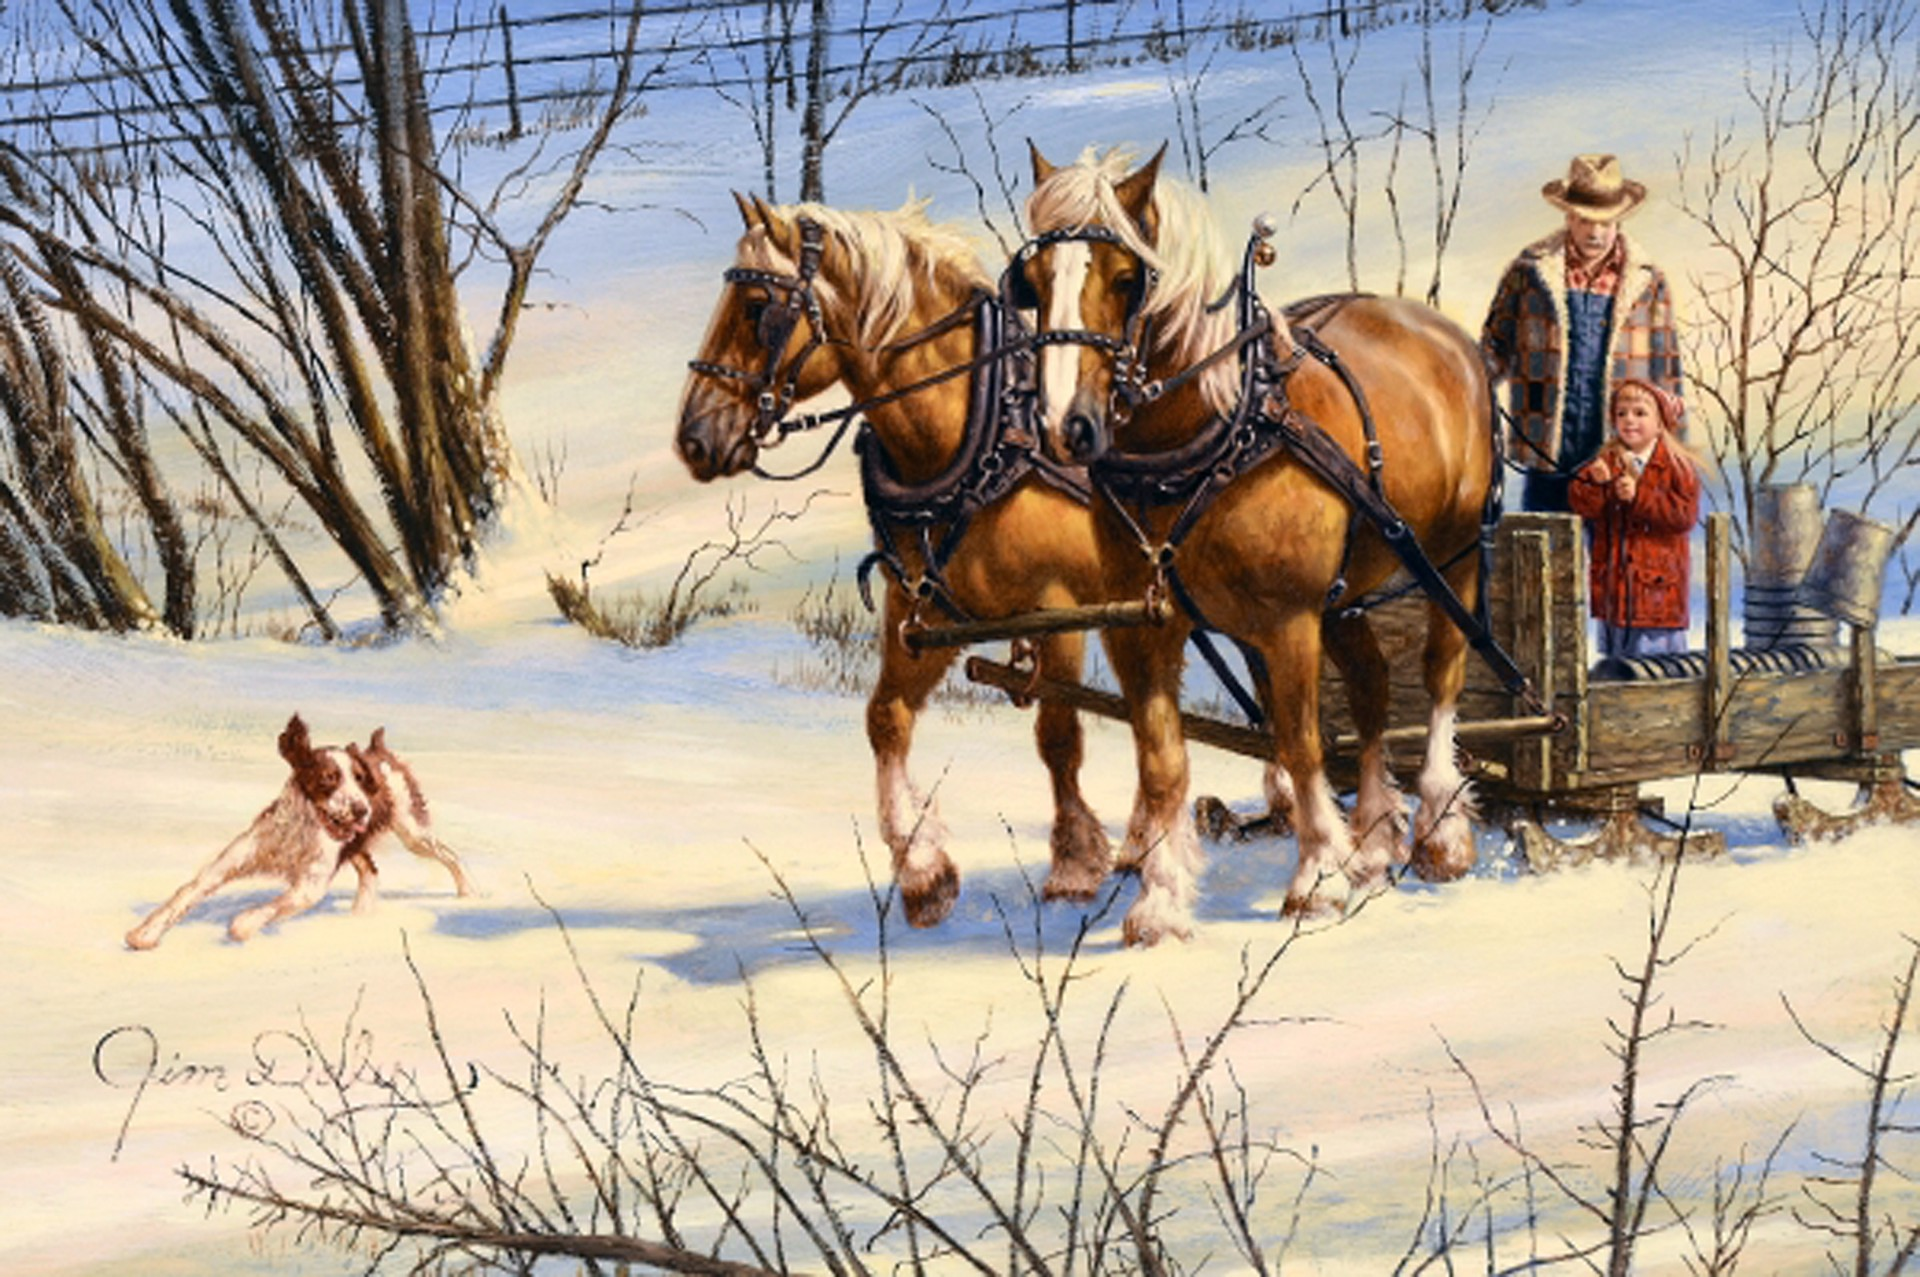 Handing Over the Reins by Jim Daly